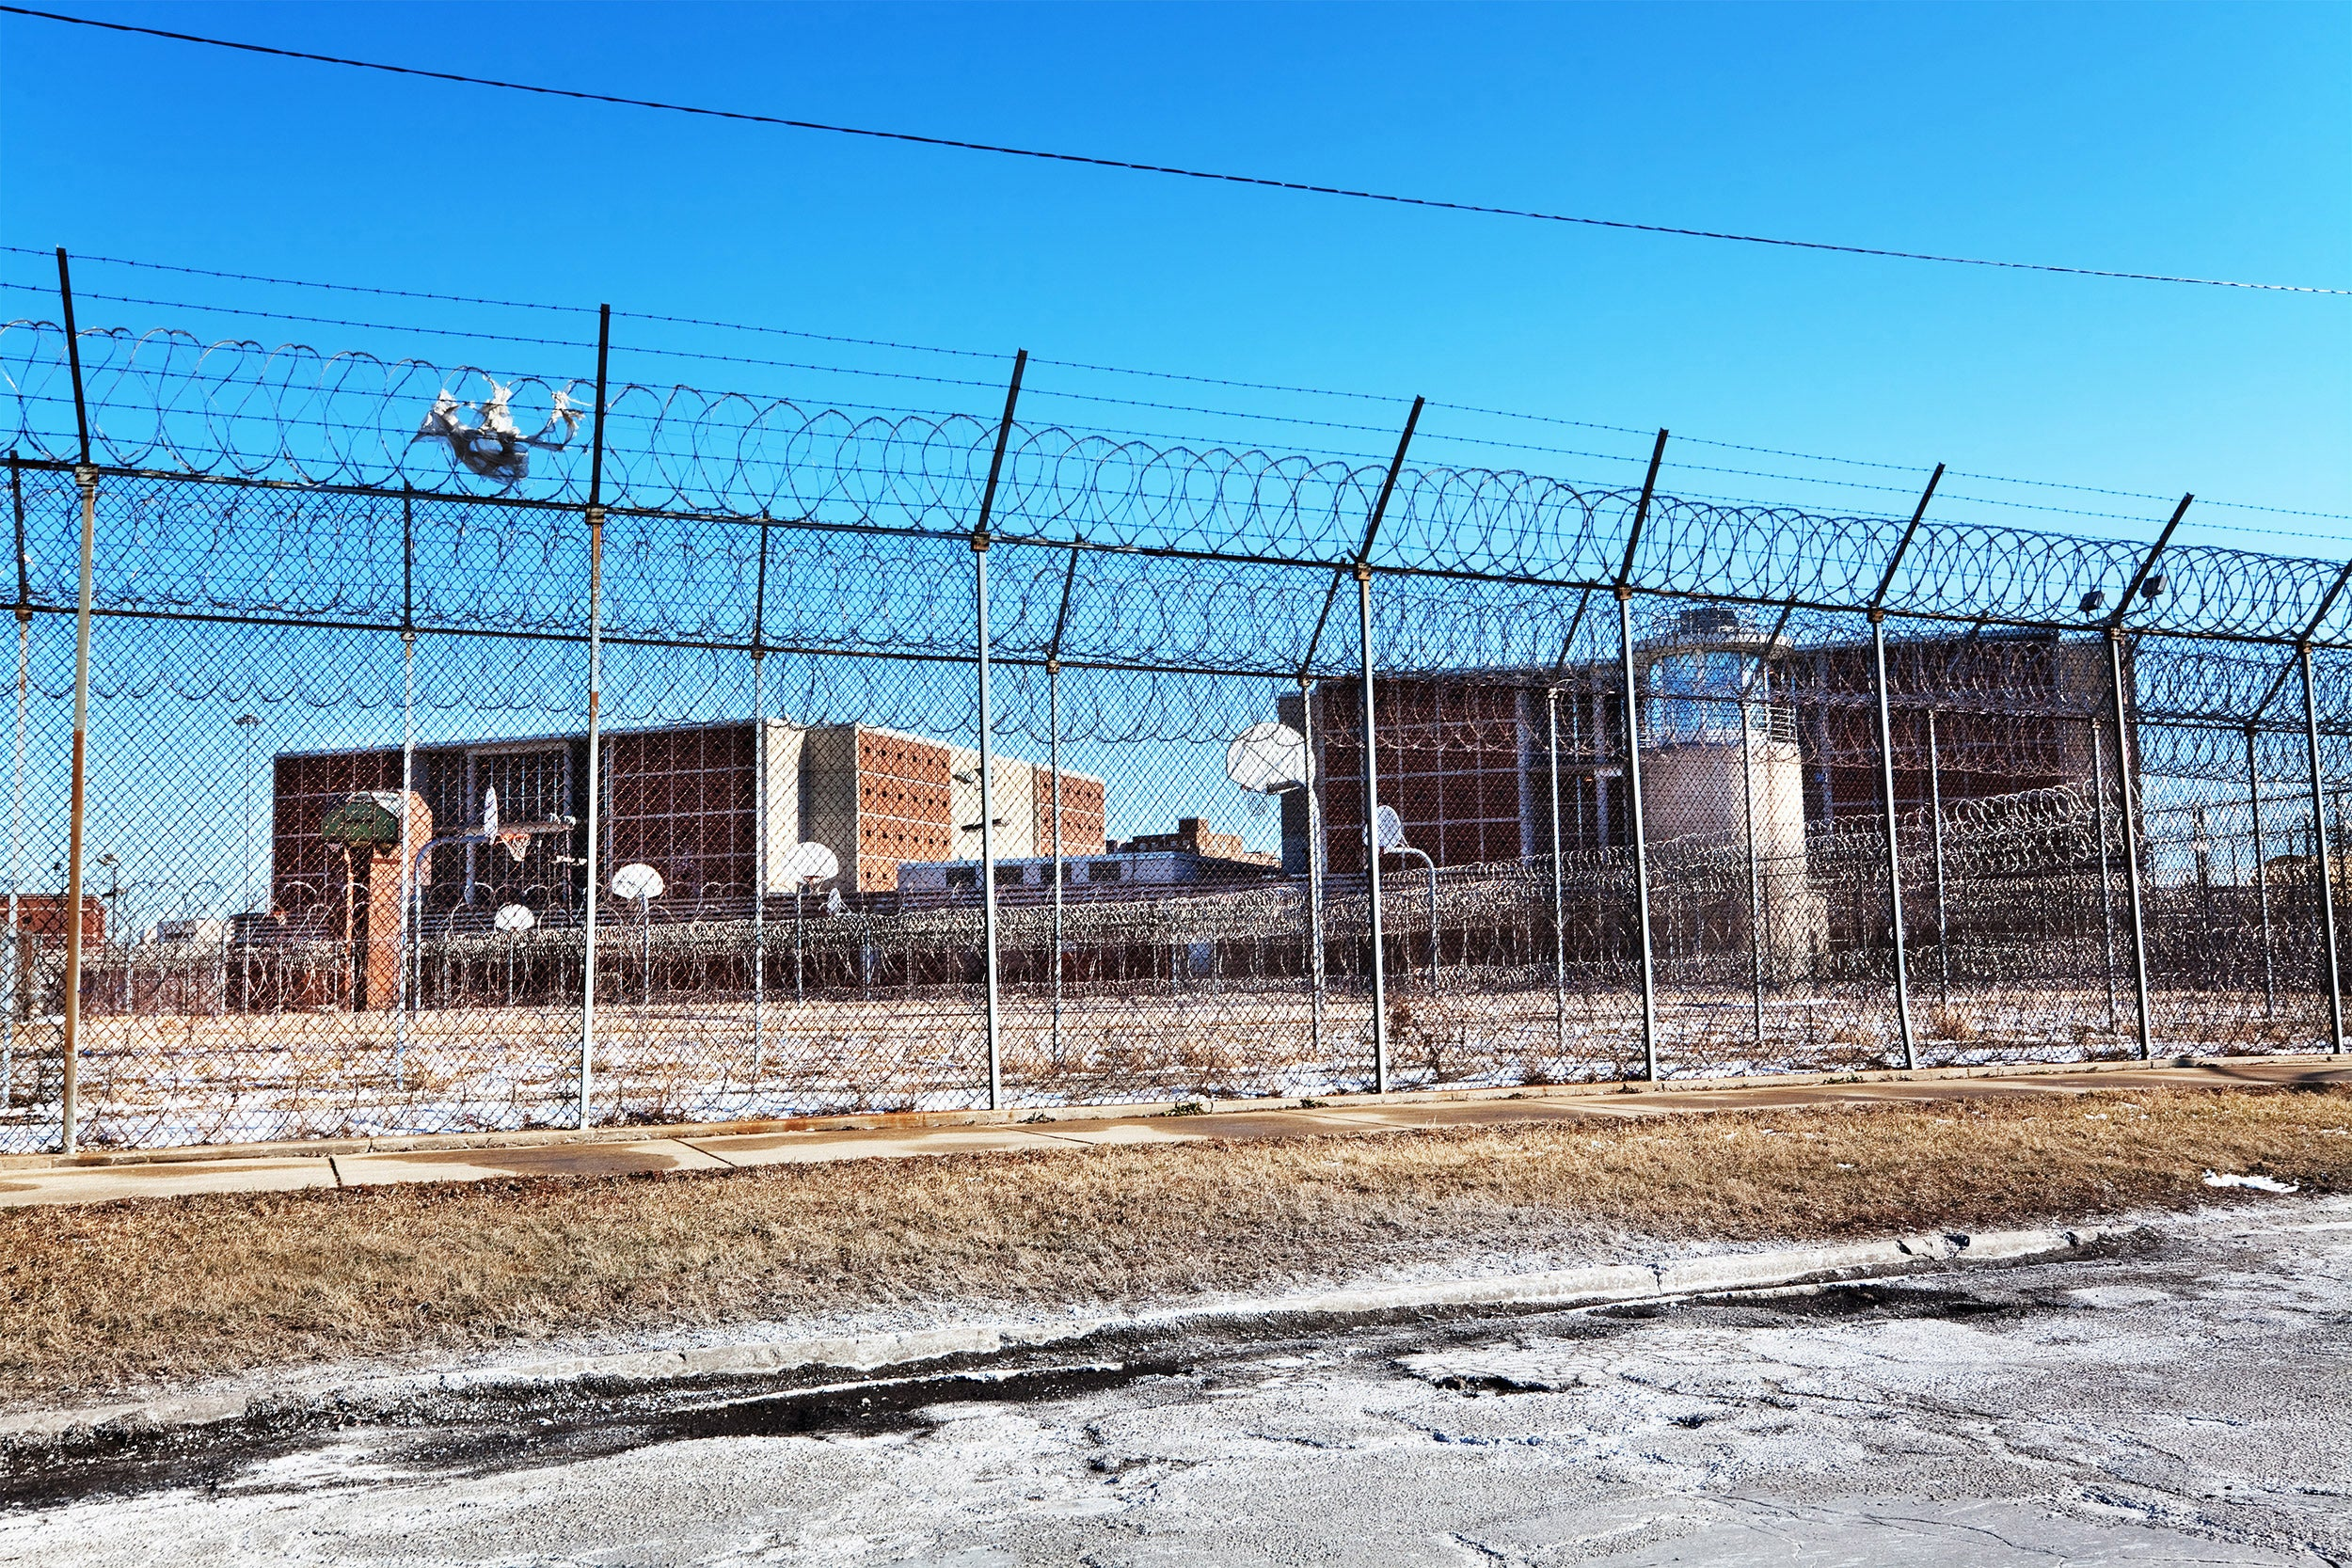 Cook County Jail.